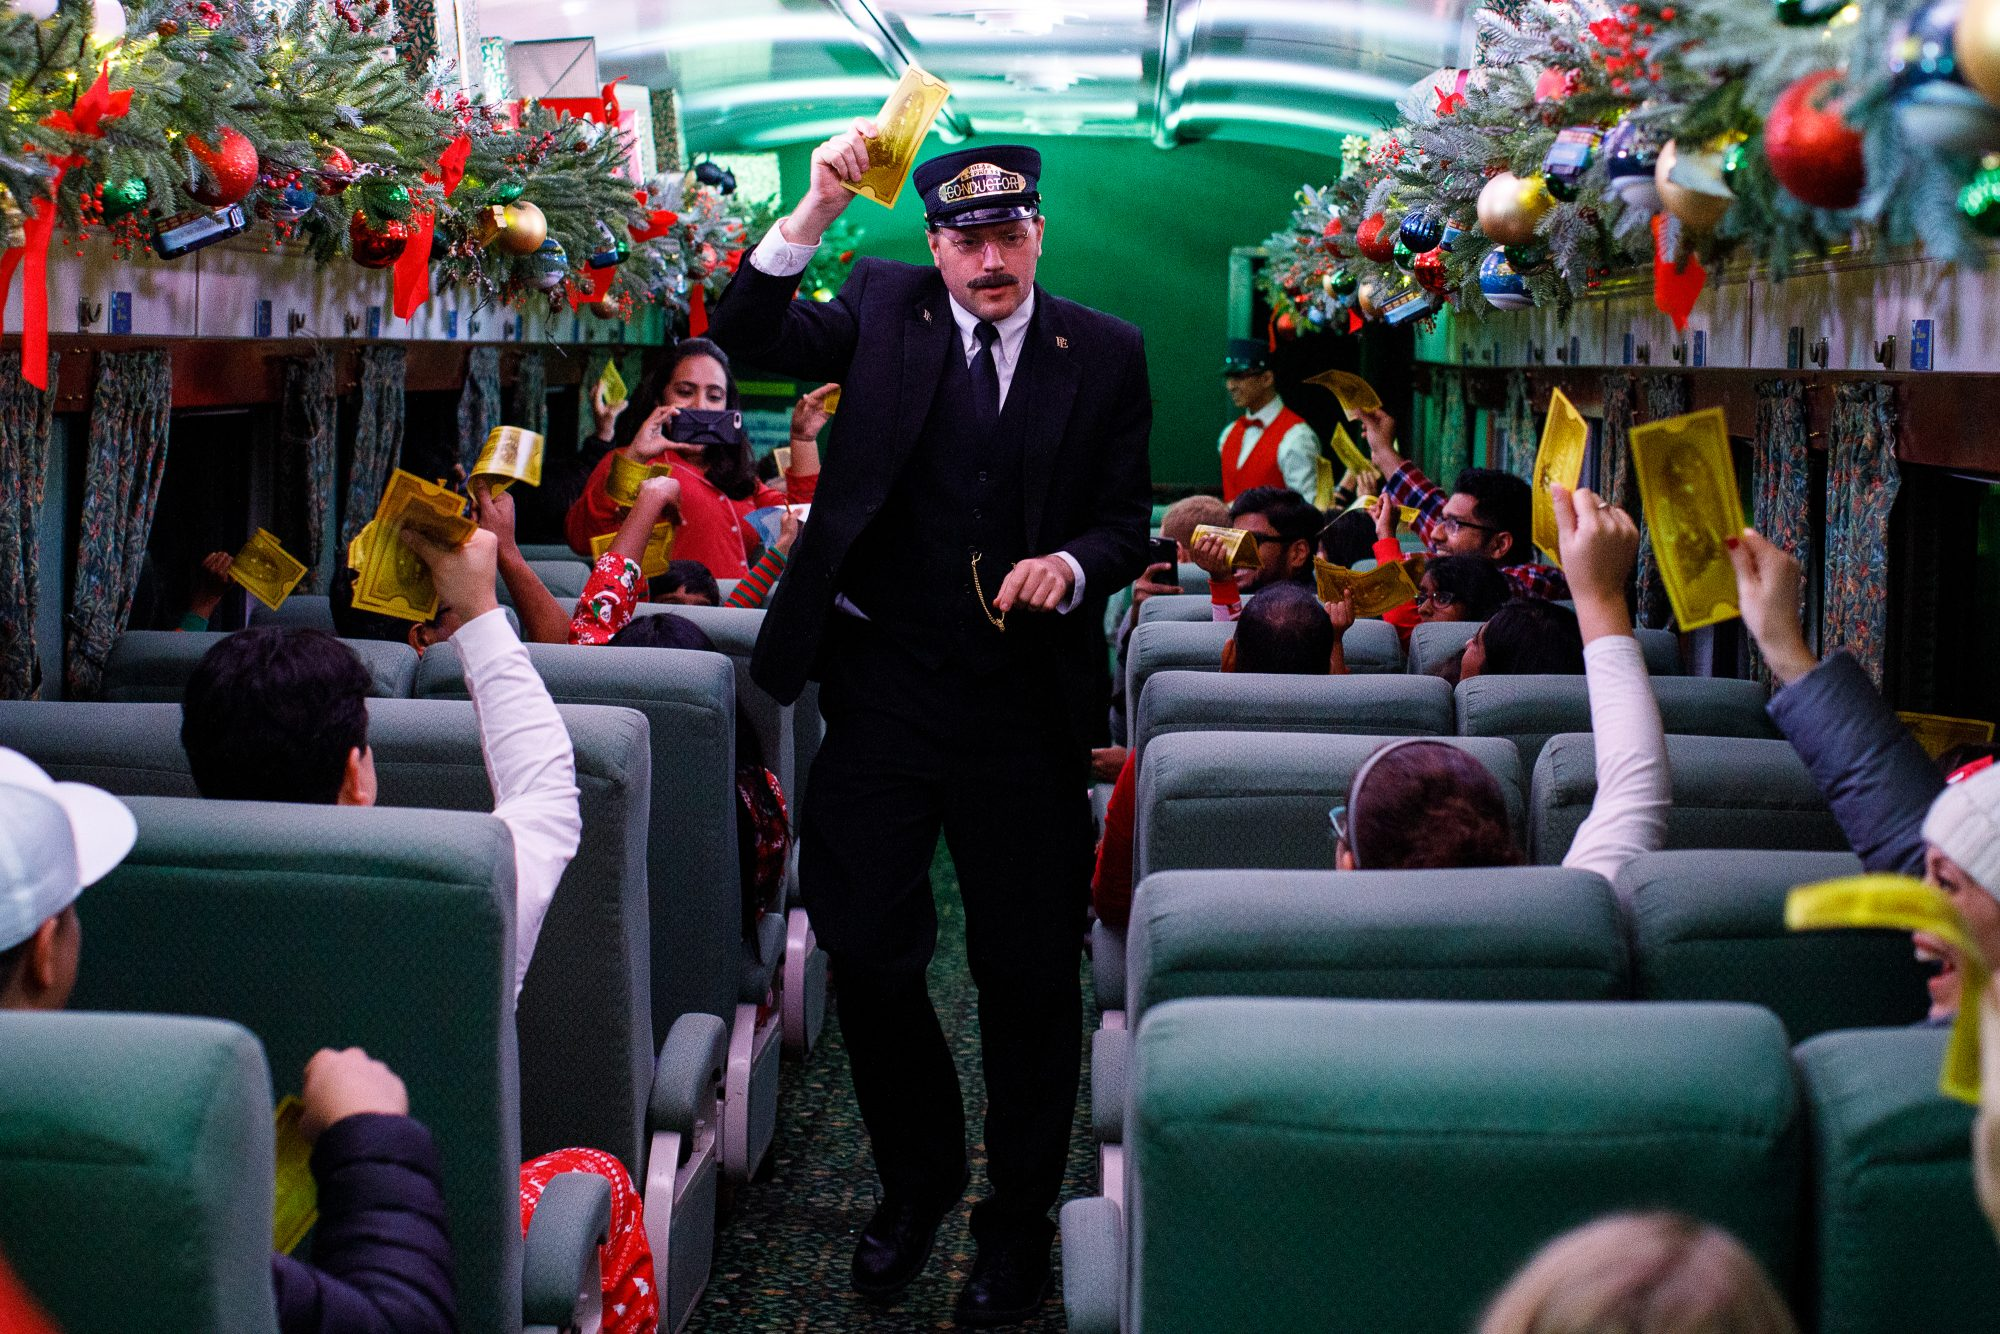 man dressed as train conductor on a train decorated for Christmas